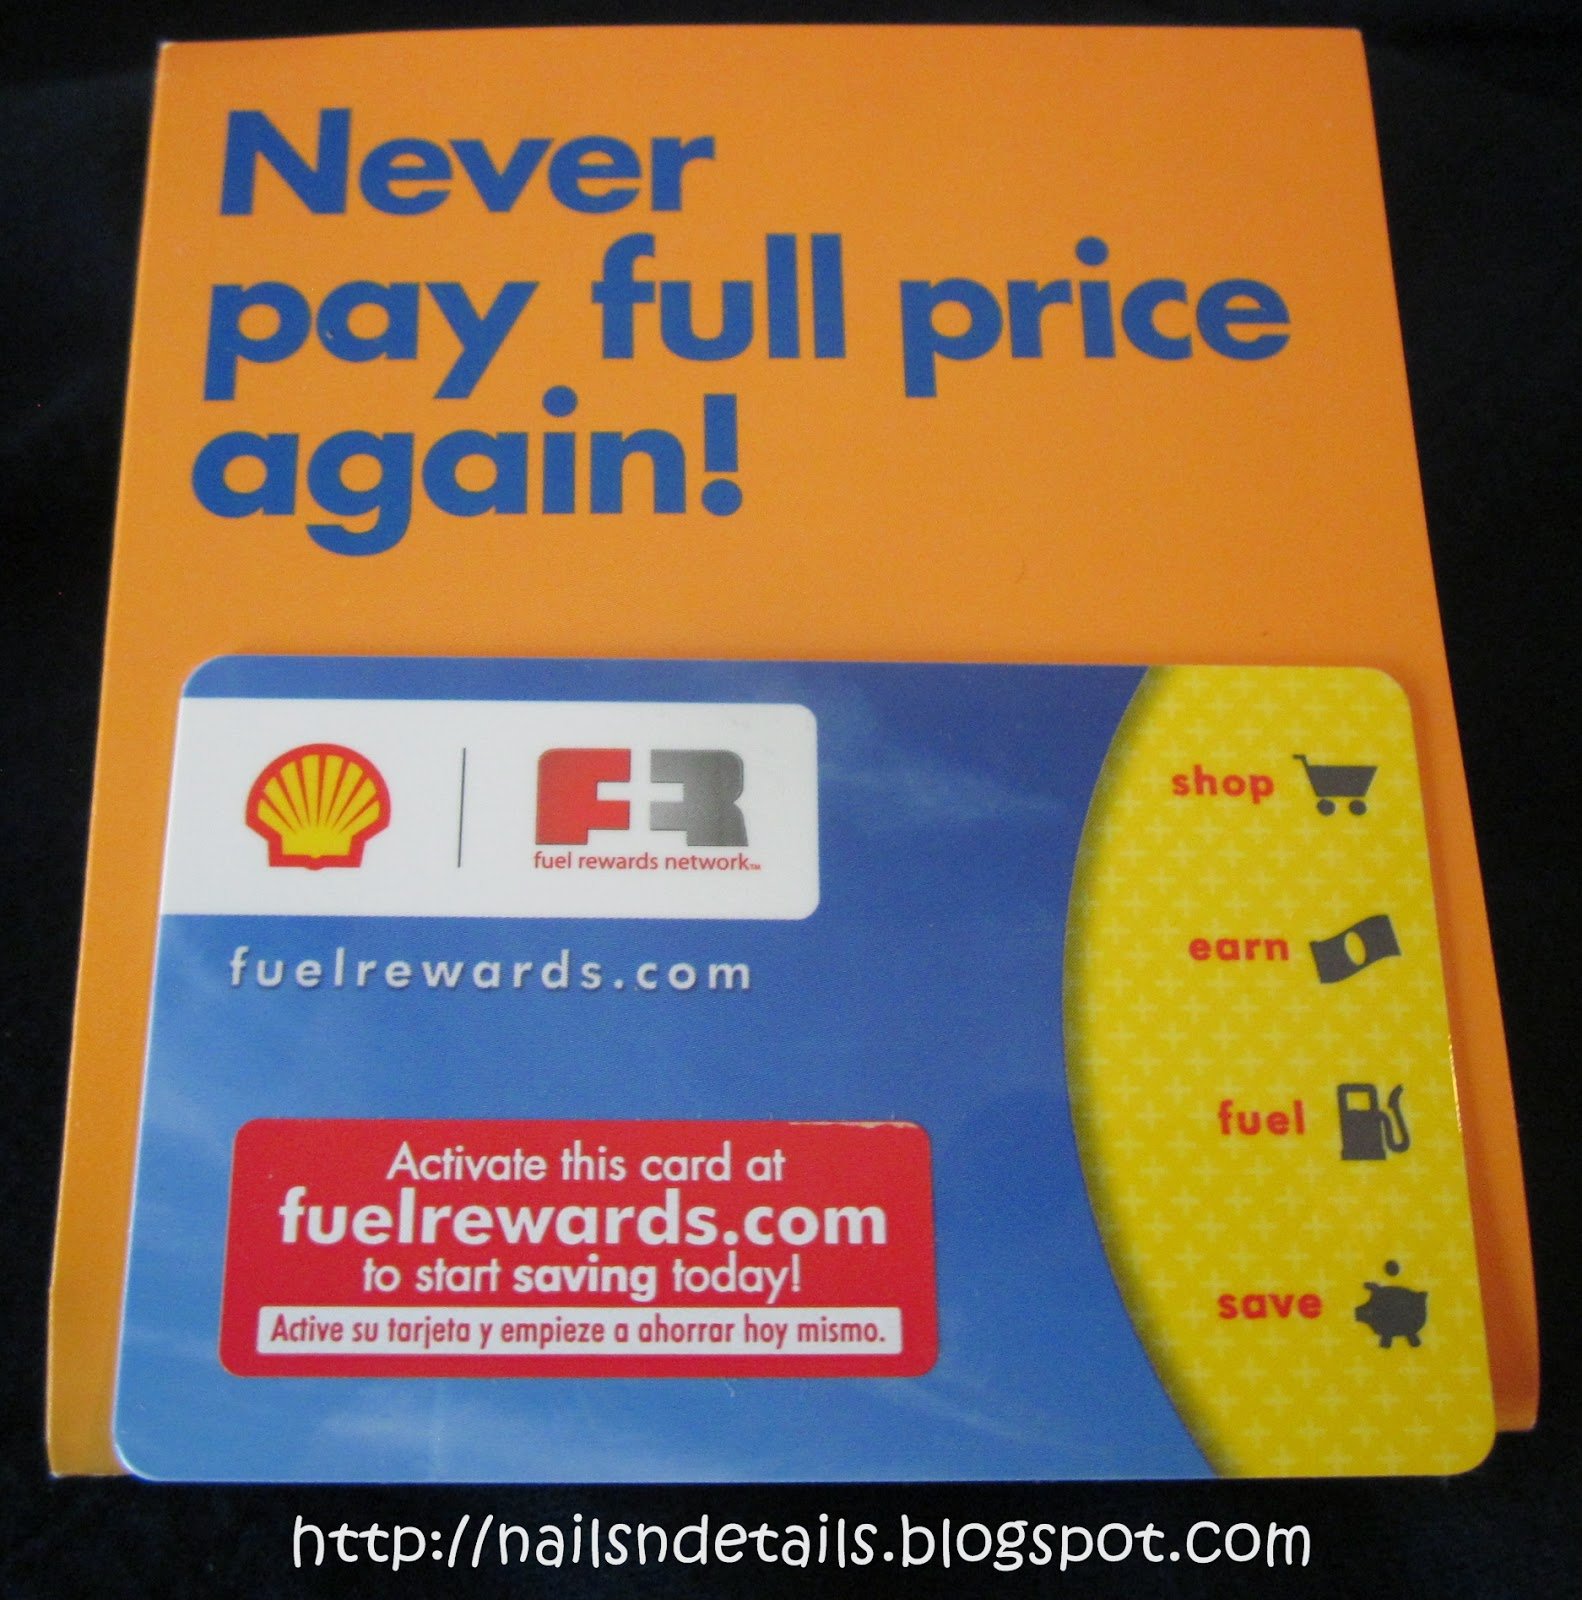 i am excited to register my card and start saving money on fuel shell is offering new members savings of - How To Use Shell Fuel Rewards Card